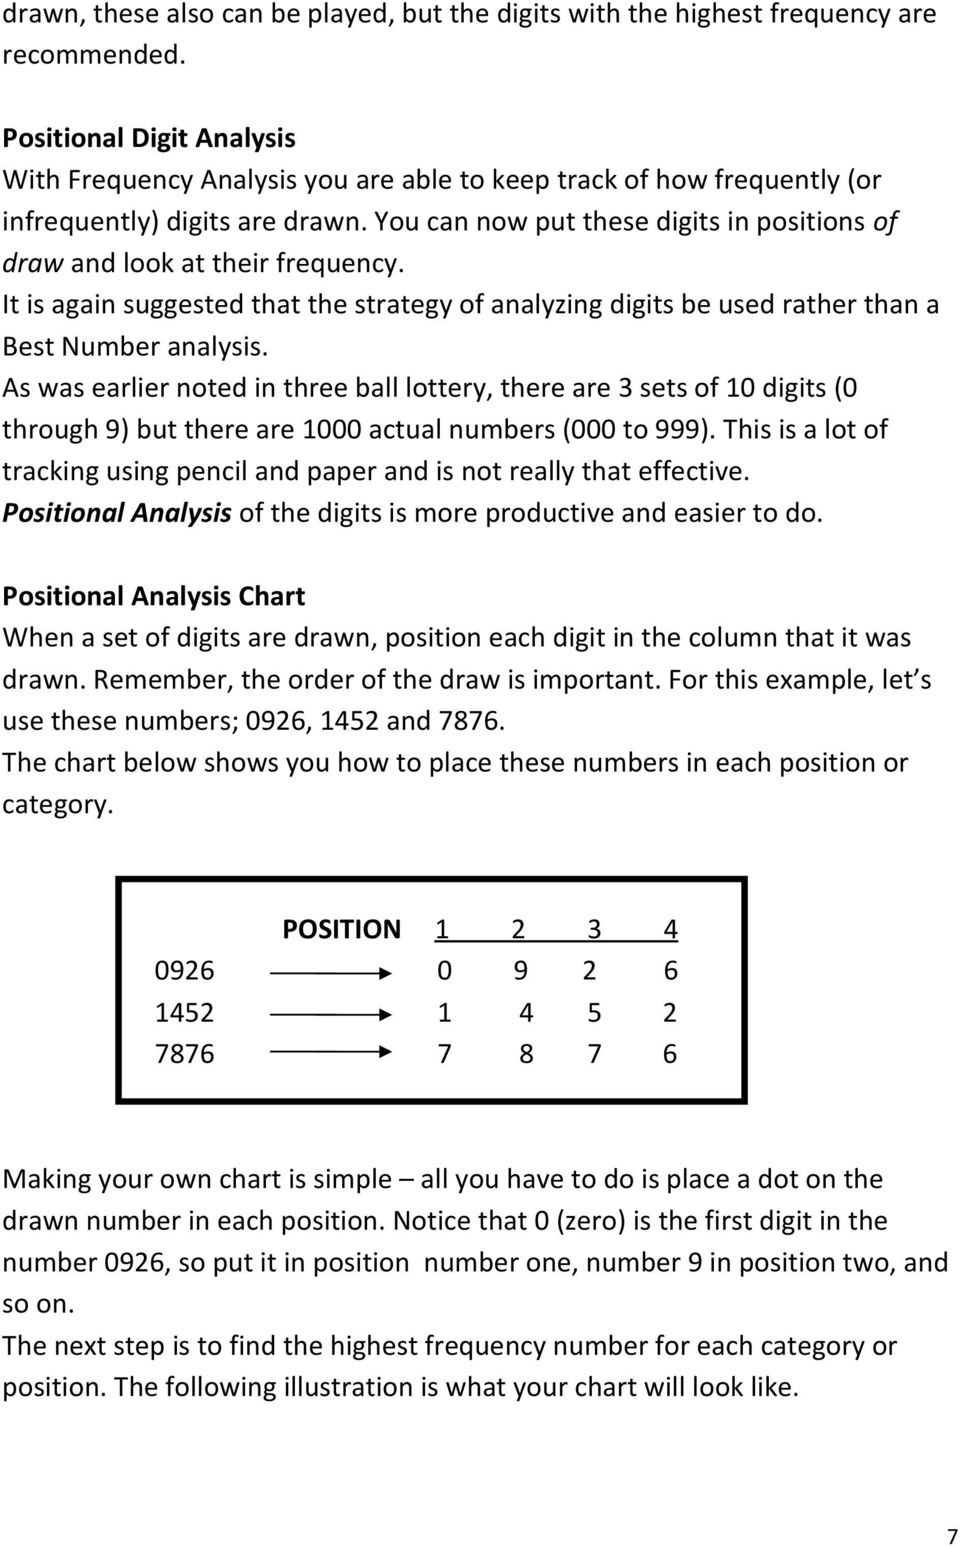 You can now put these digits in positions of draw and look at their frequency. It is again suggested that the strategy of analyzing digits be used rather than a Best Number analysis.